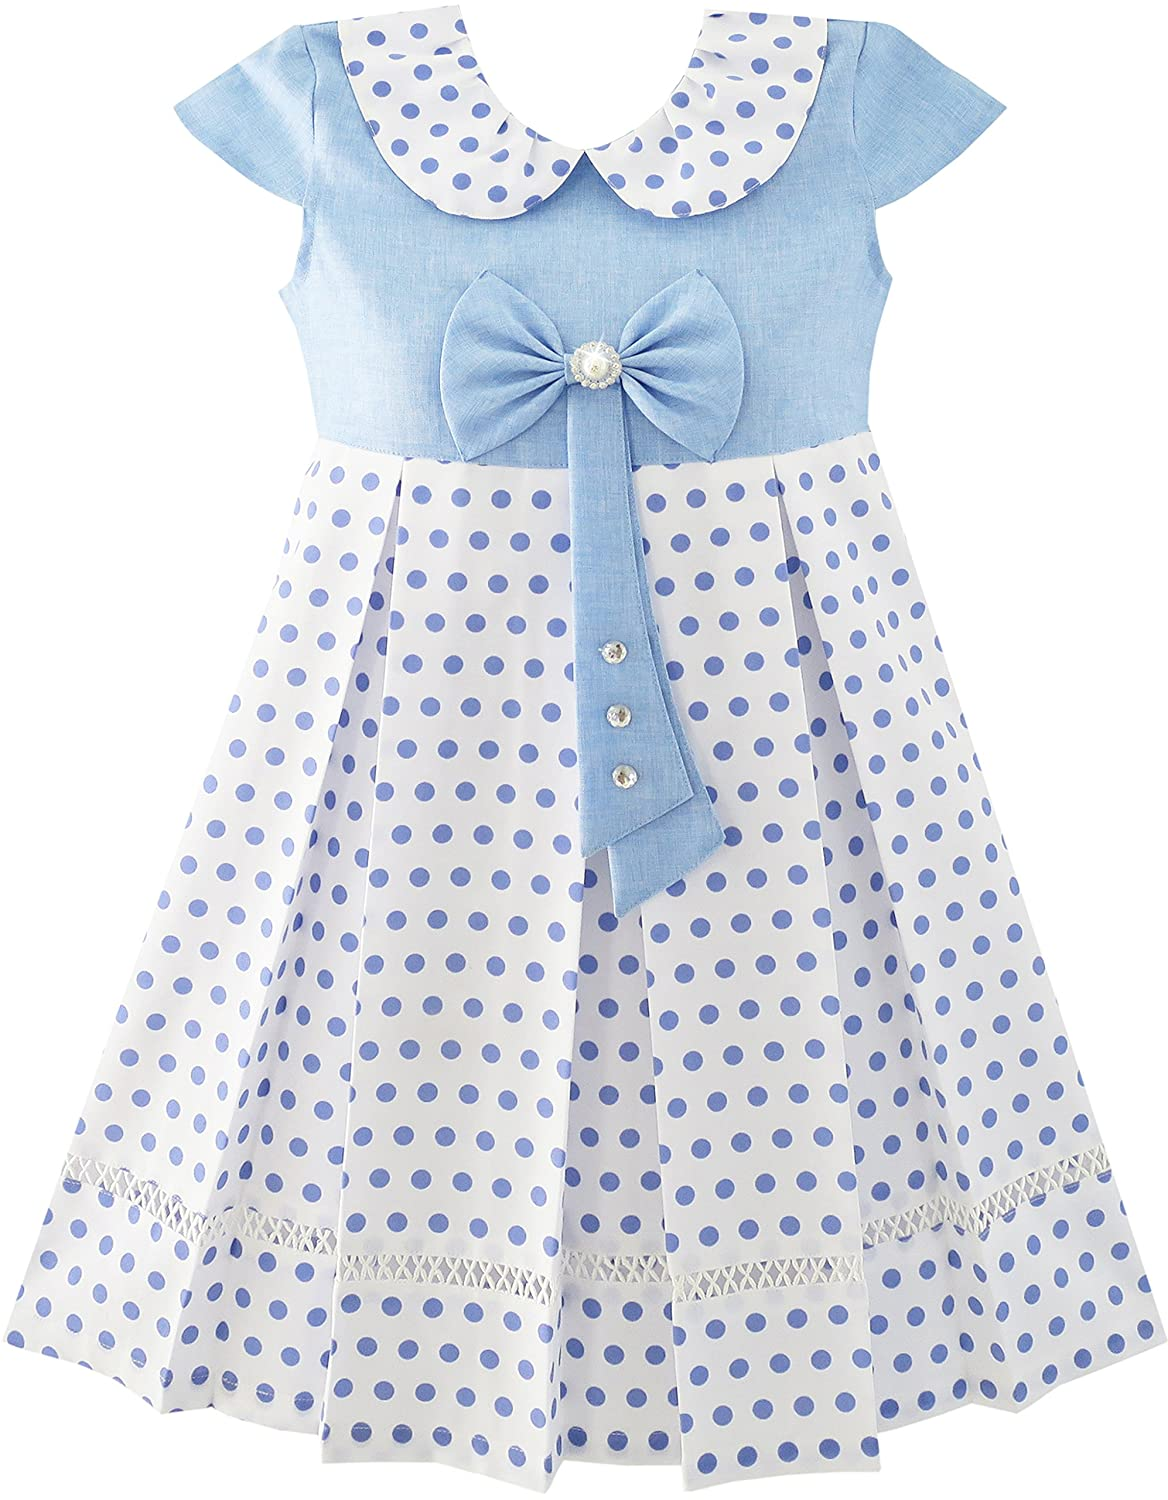 Sunny Fashion Girls Dress Polka Dot School Bow Tie Pearl Cap Sleeve Size 4-14